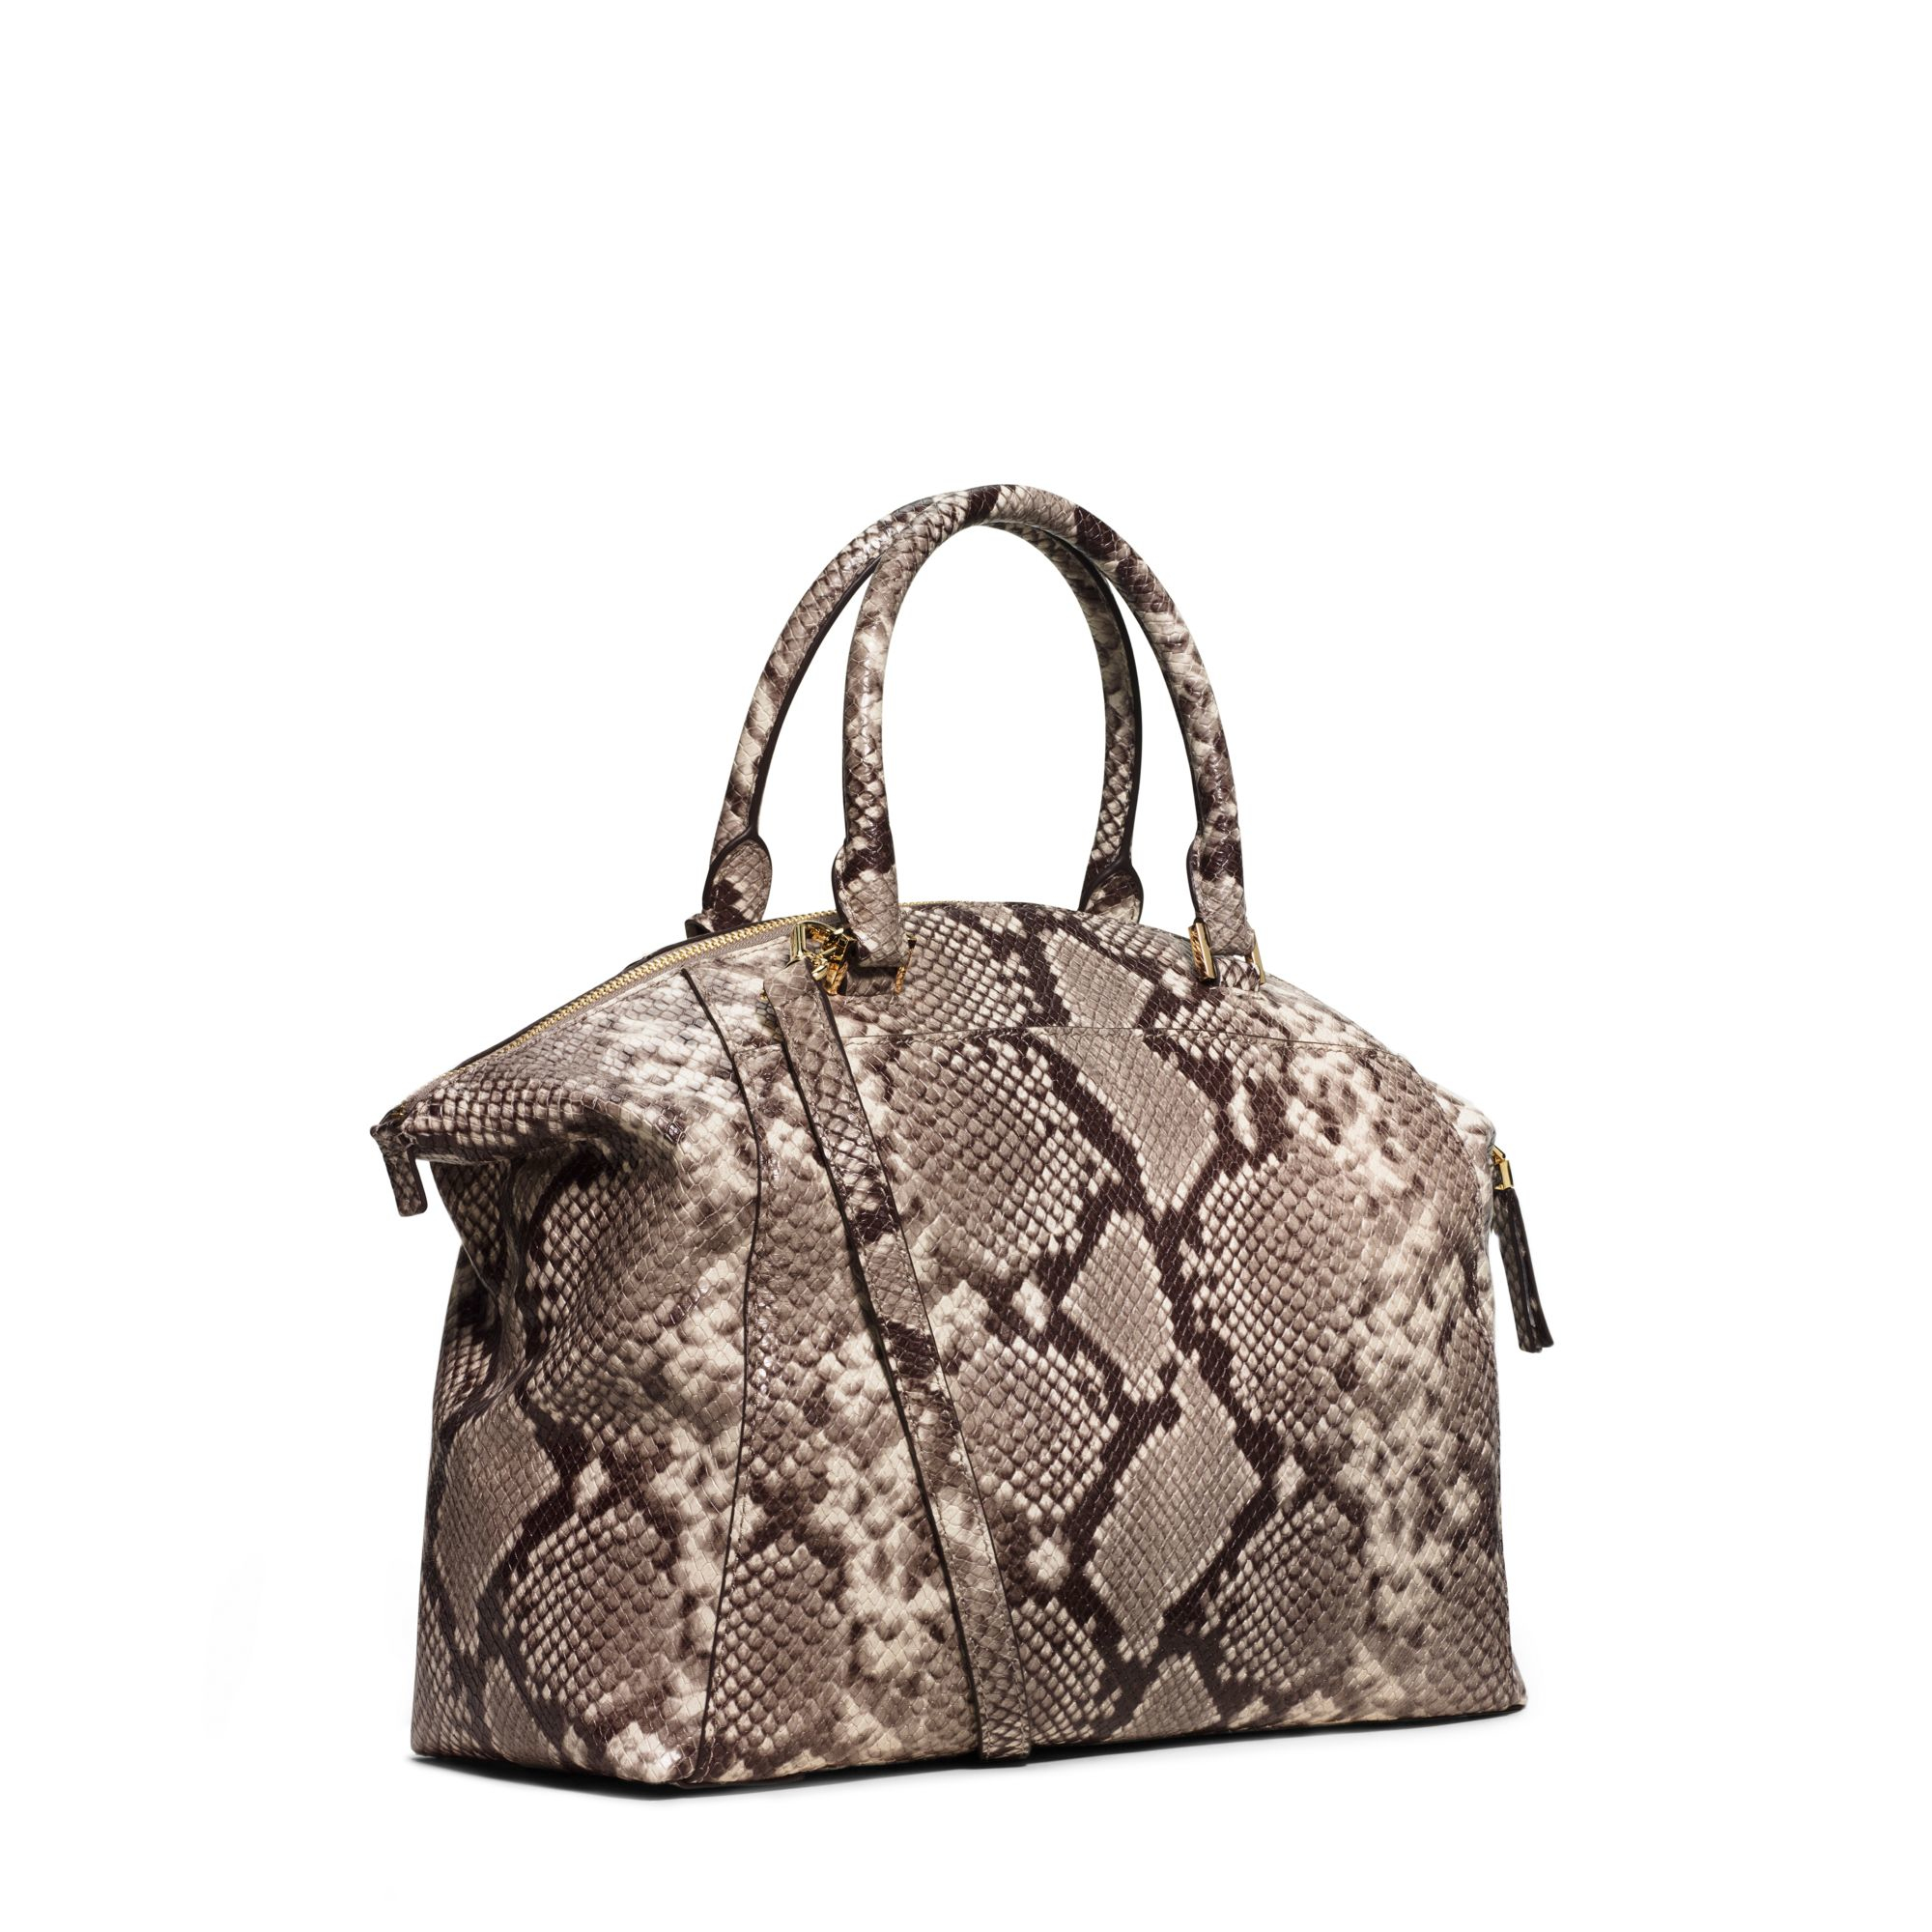 53d234f4cba3 Michael Kors Riley Large Embossed-leather Satchel in Natural - Lyst